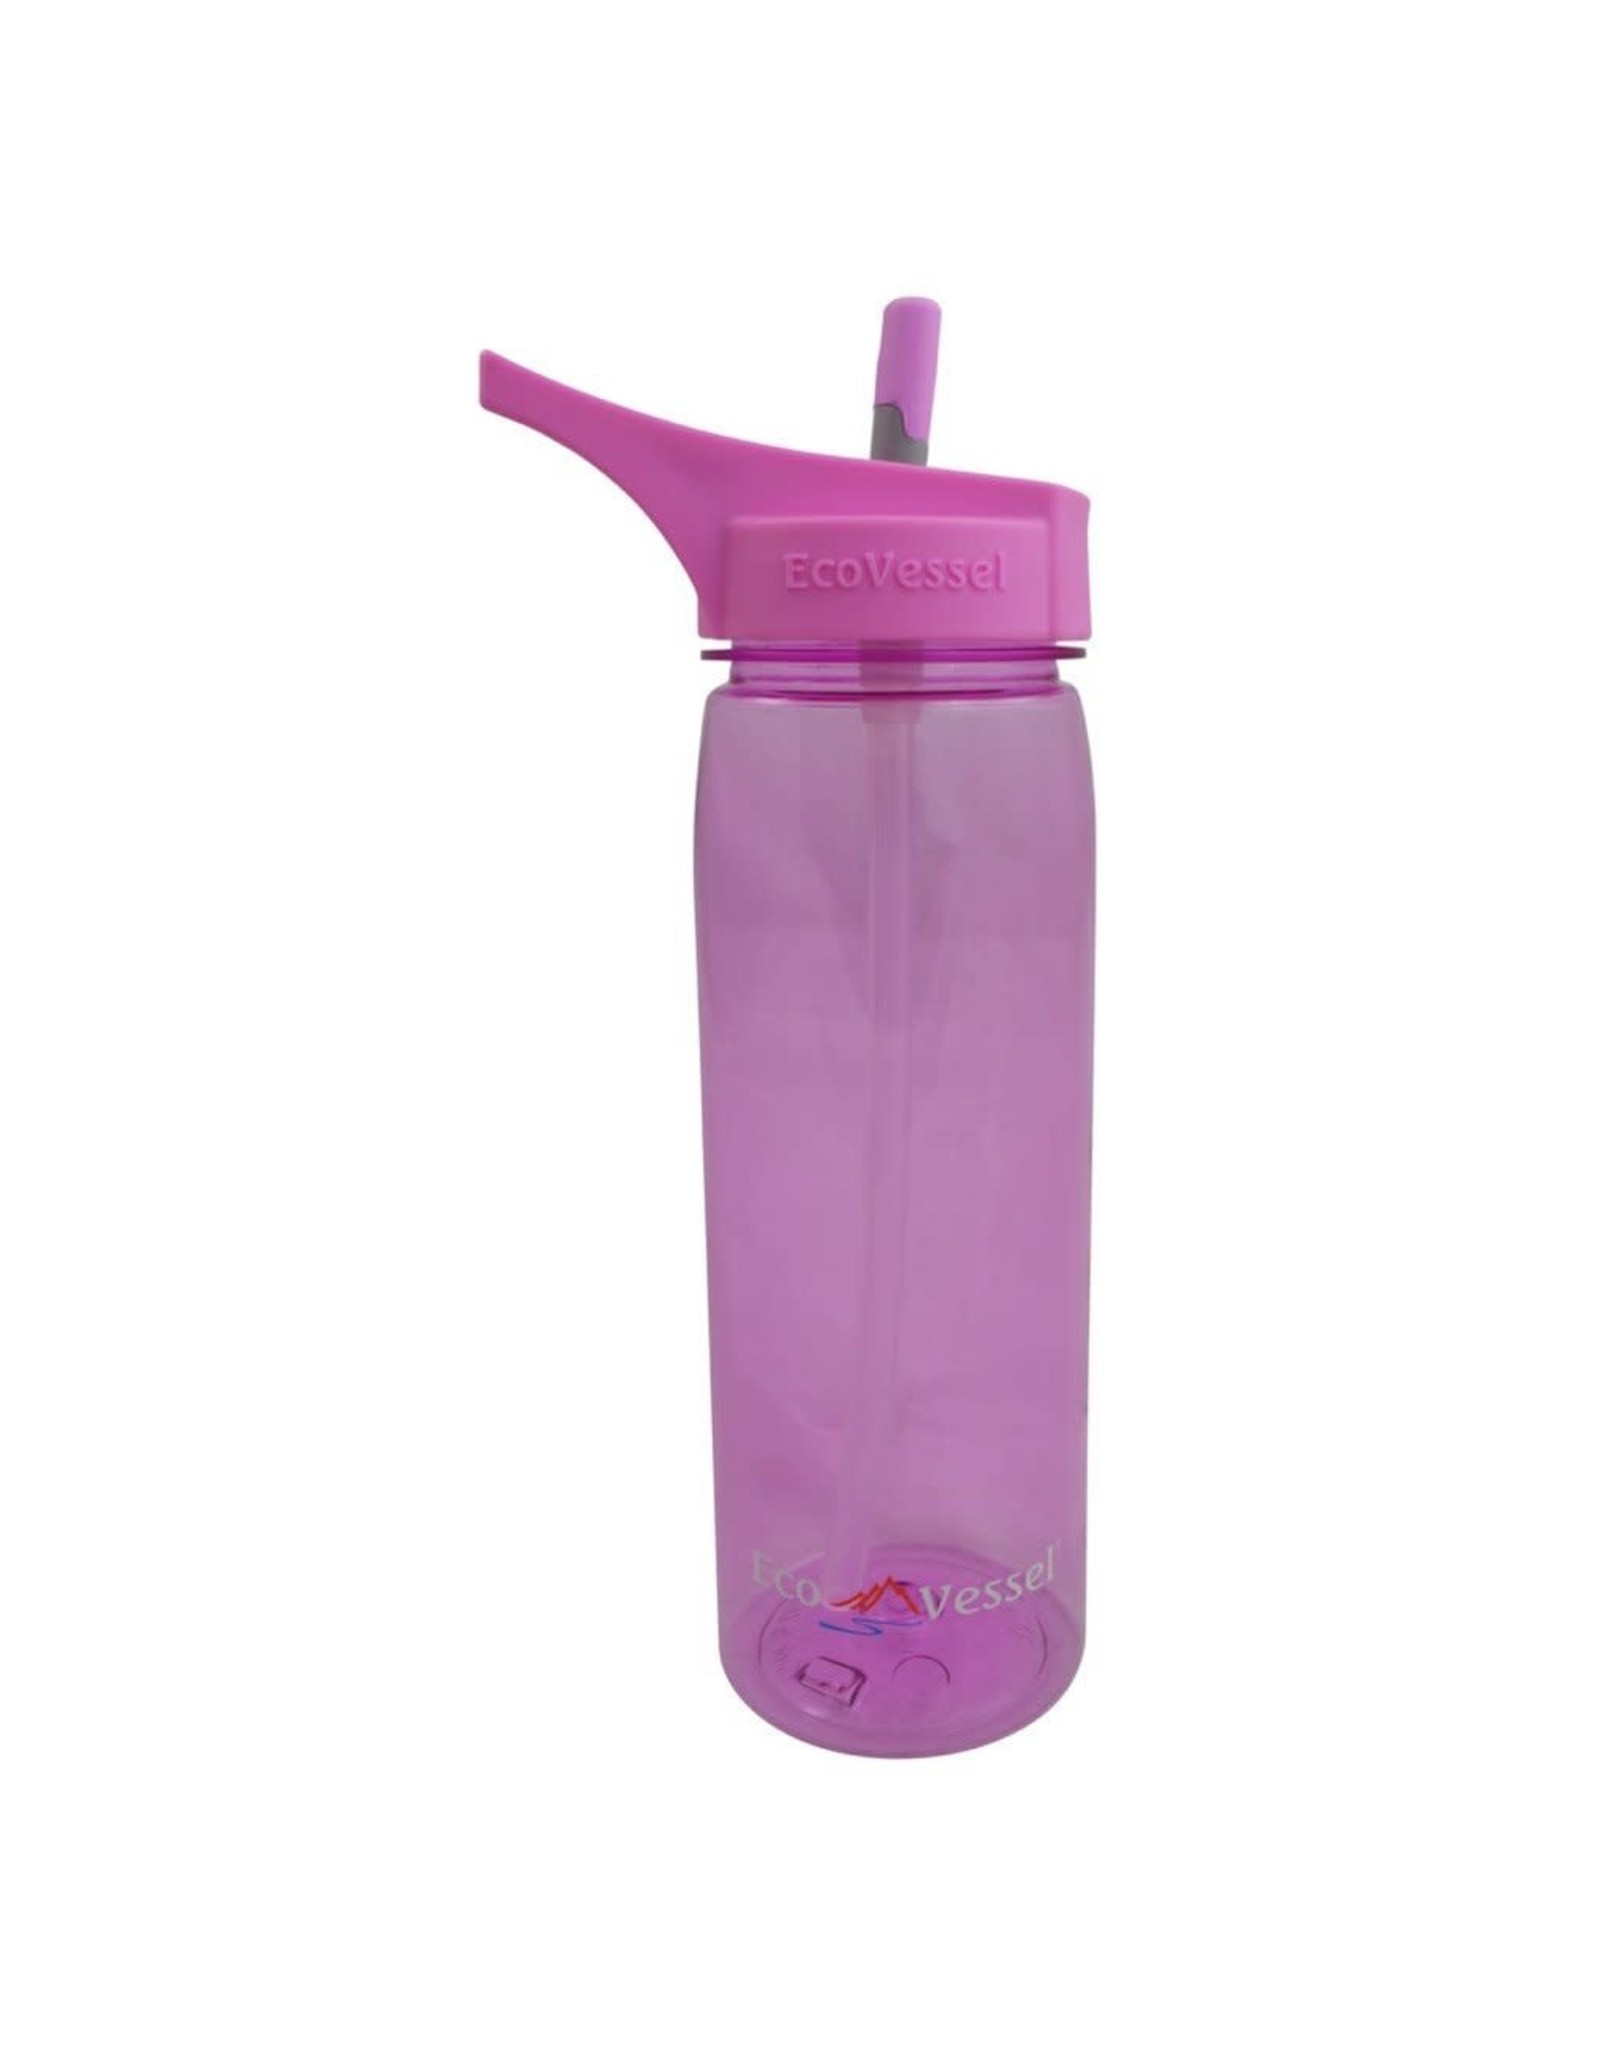 EcoVessel ECOVESSEL WAVE TRITAN PLASTIC BOTTLE WITH STRAW